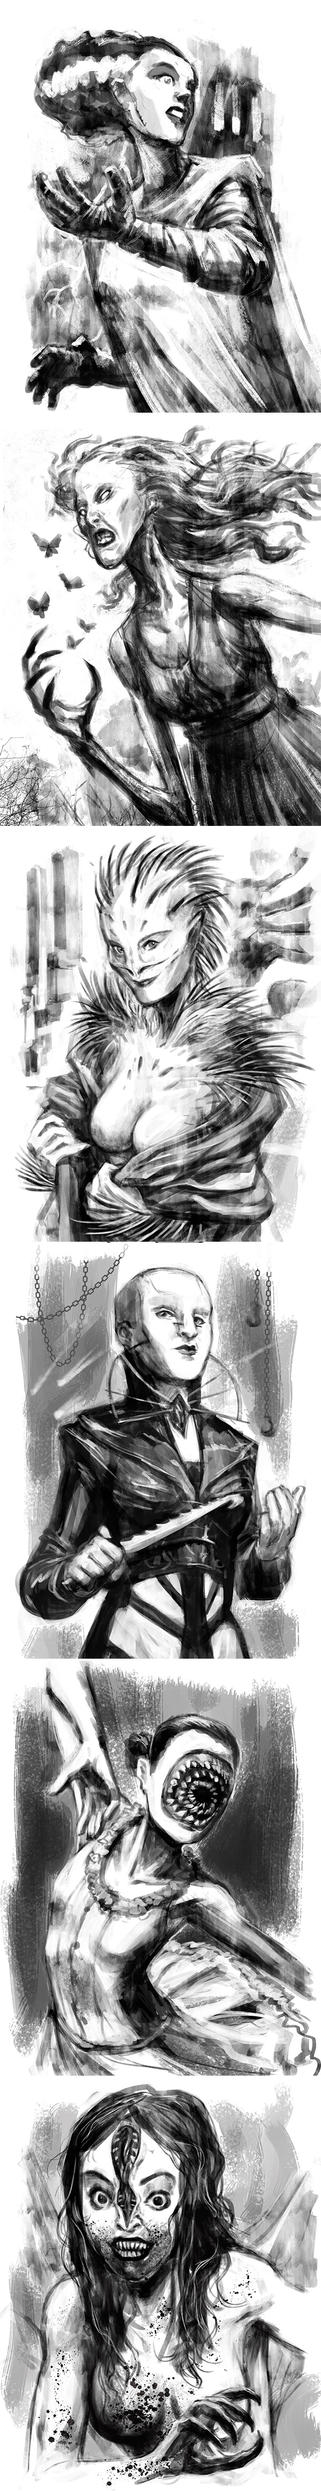 Daily-sketch-2017-Female horror characters by Onikaizer